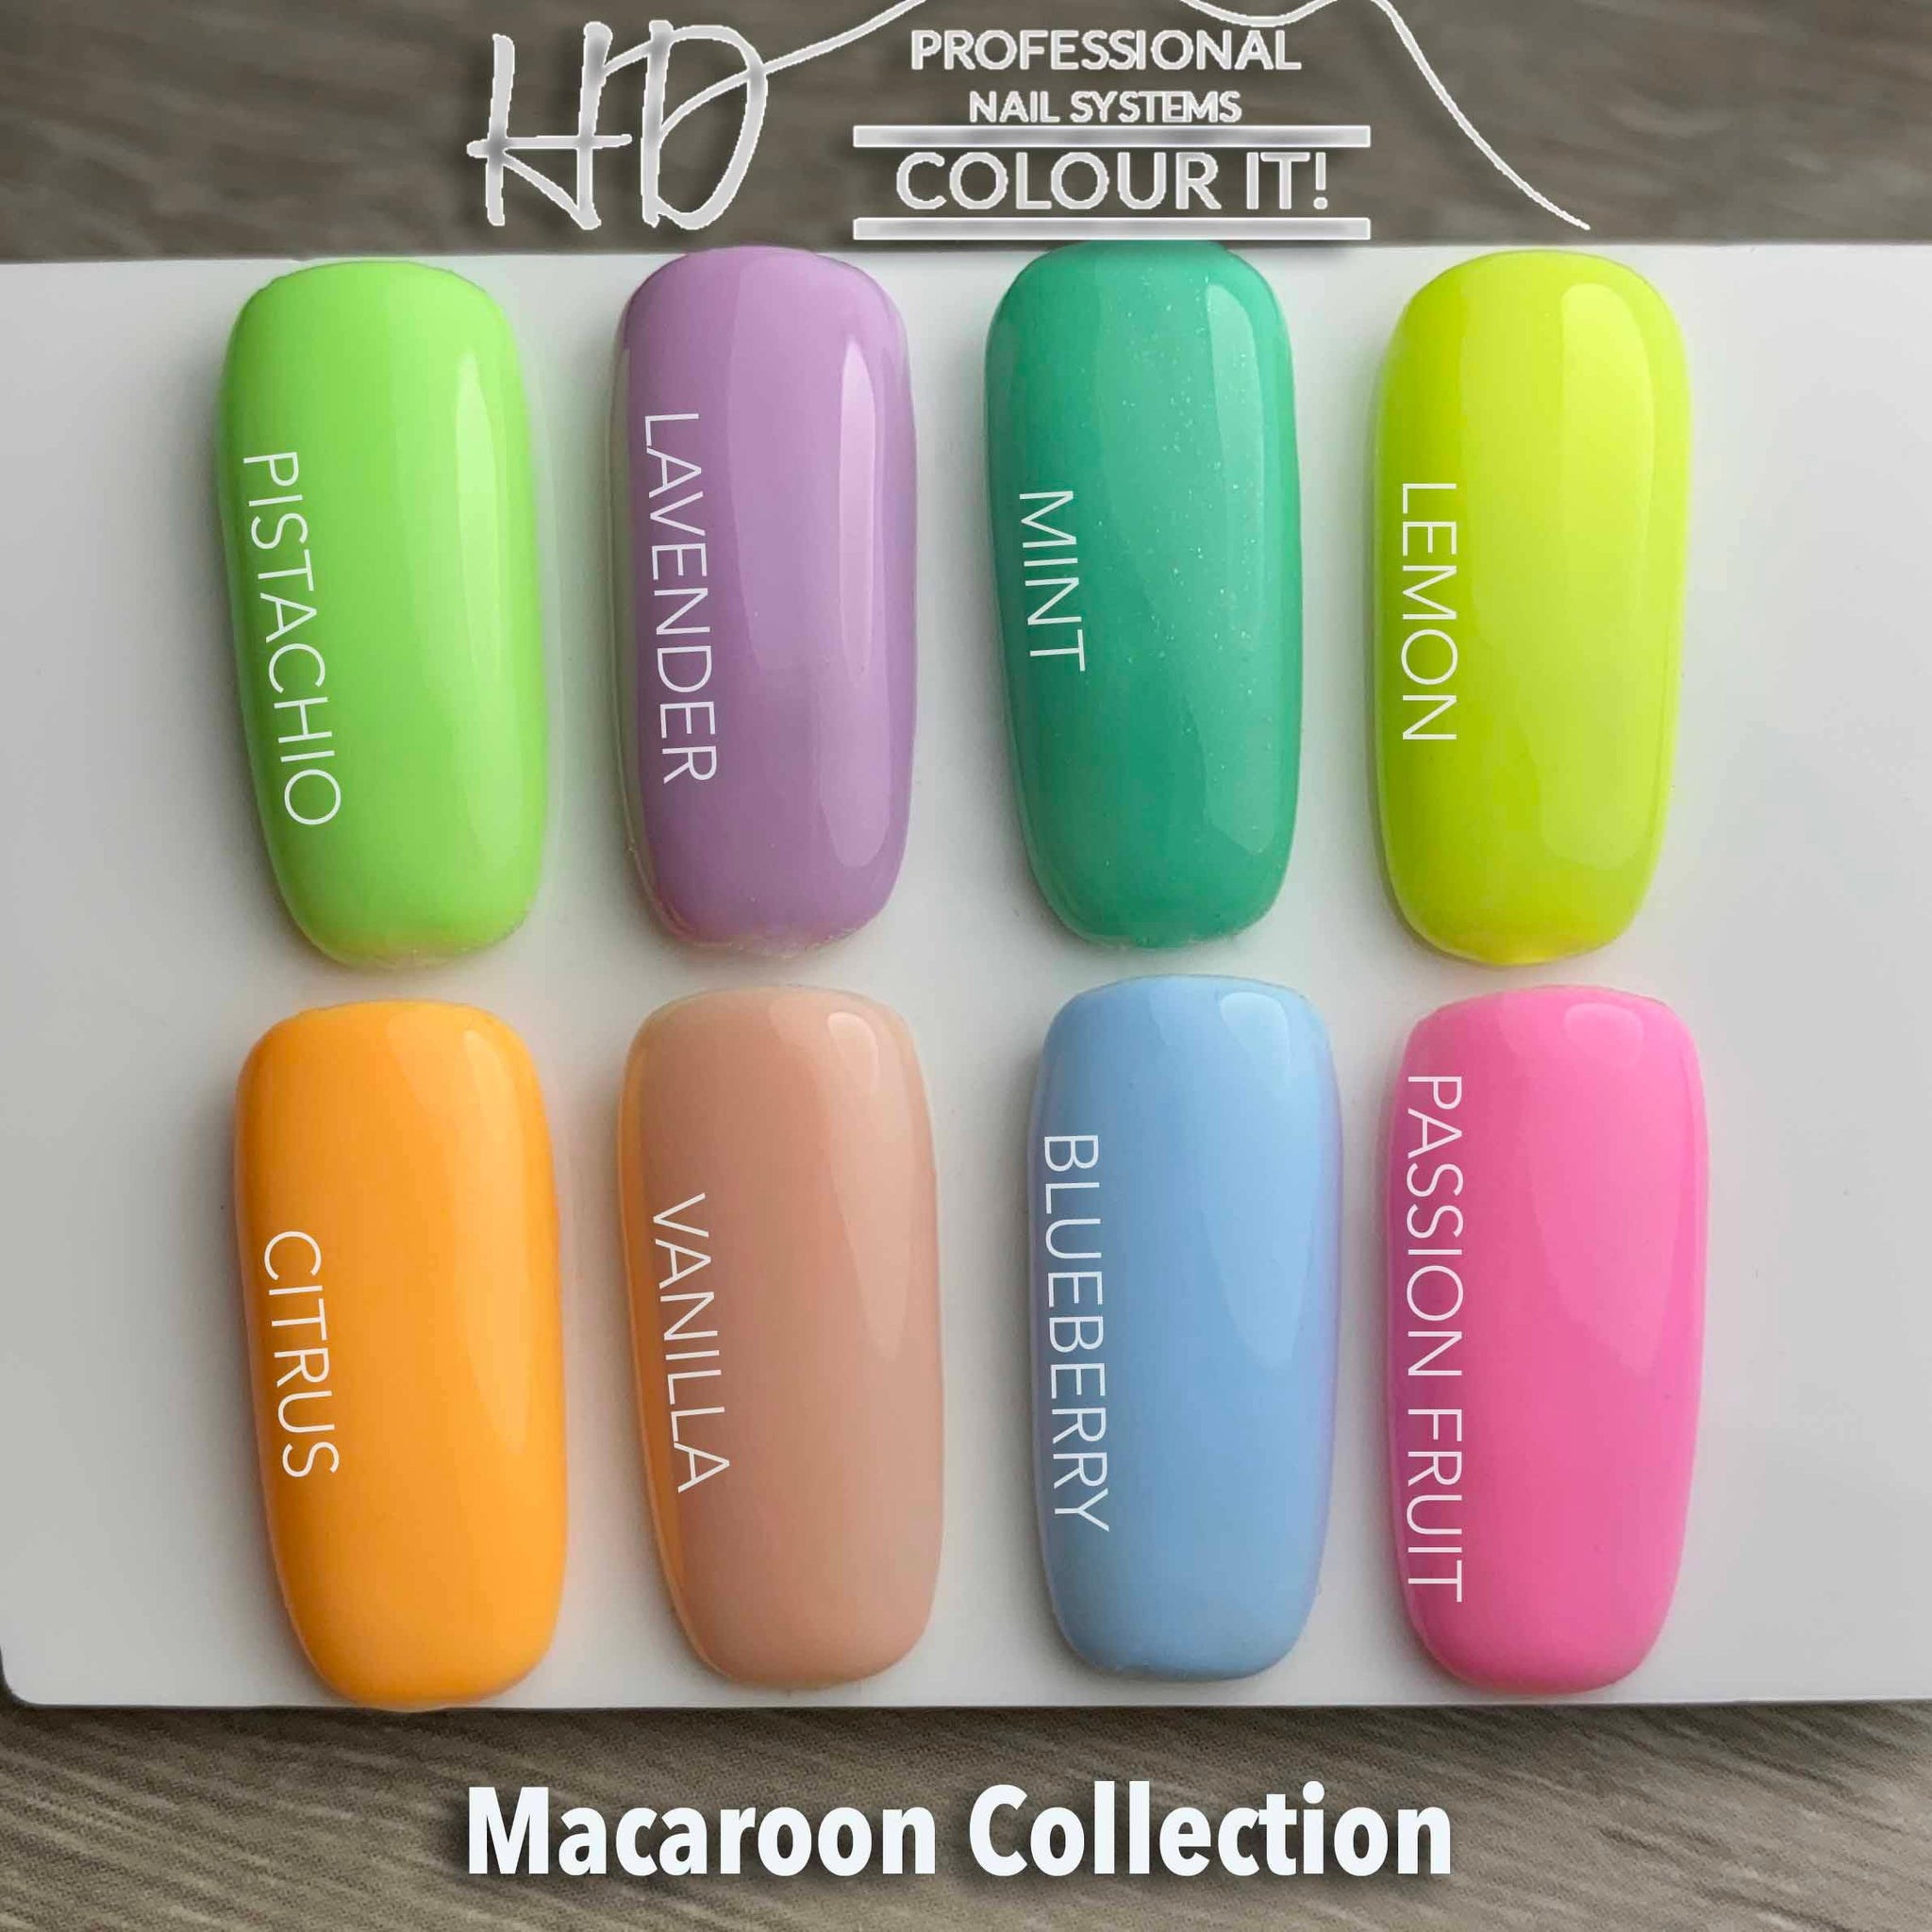 HD Colour It!  Macaroon Collection (all 8 colors 15ml)